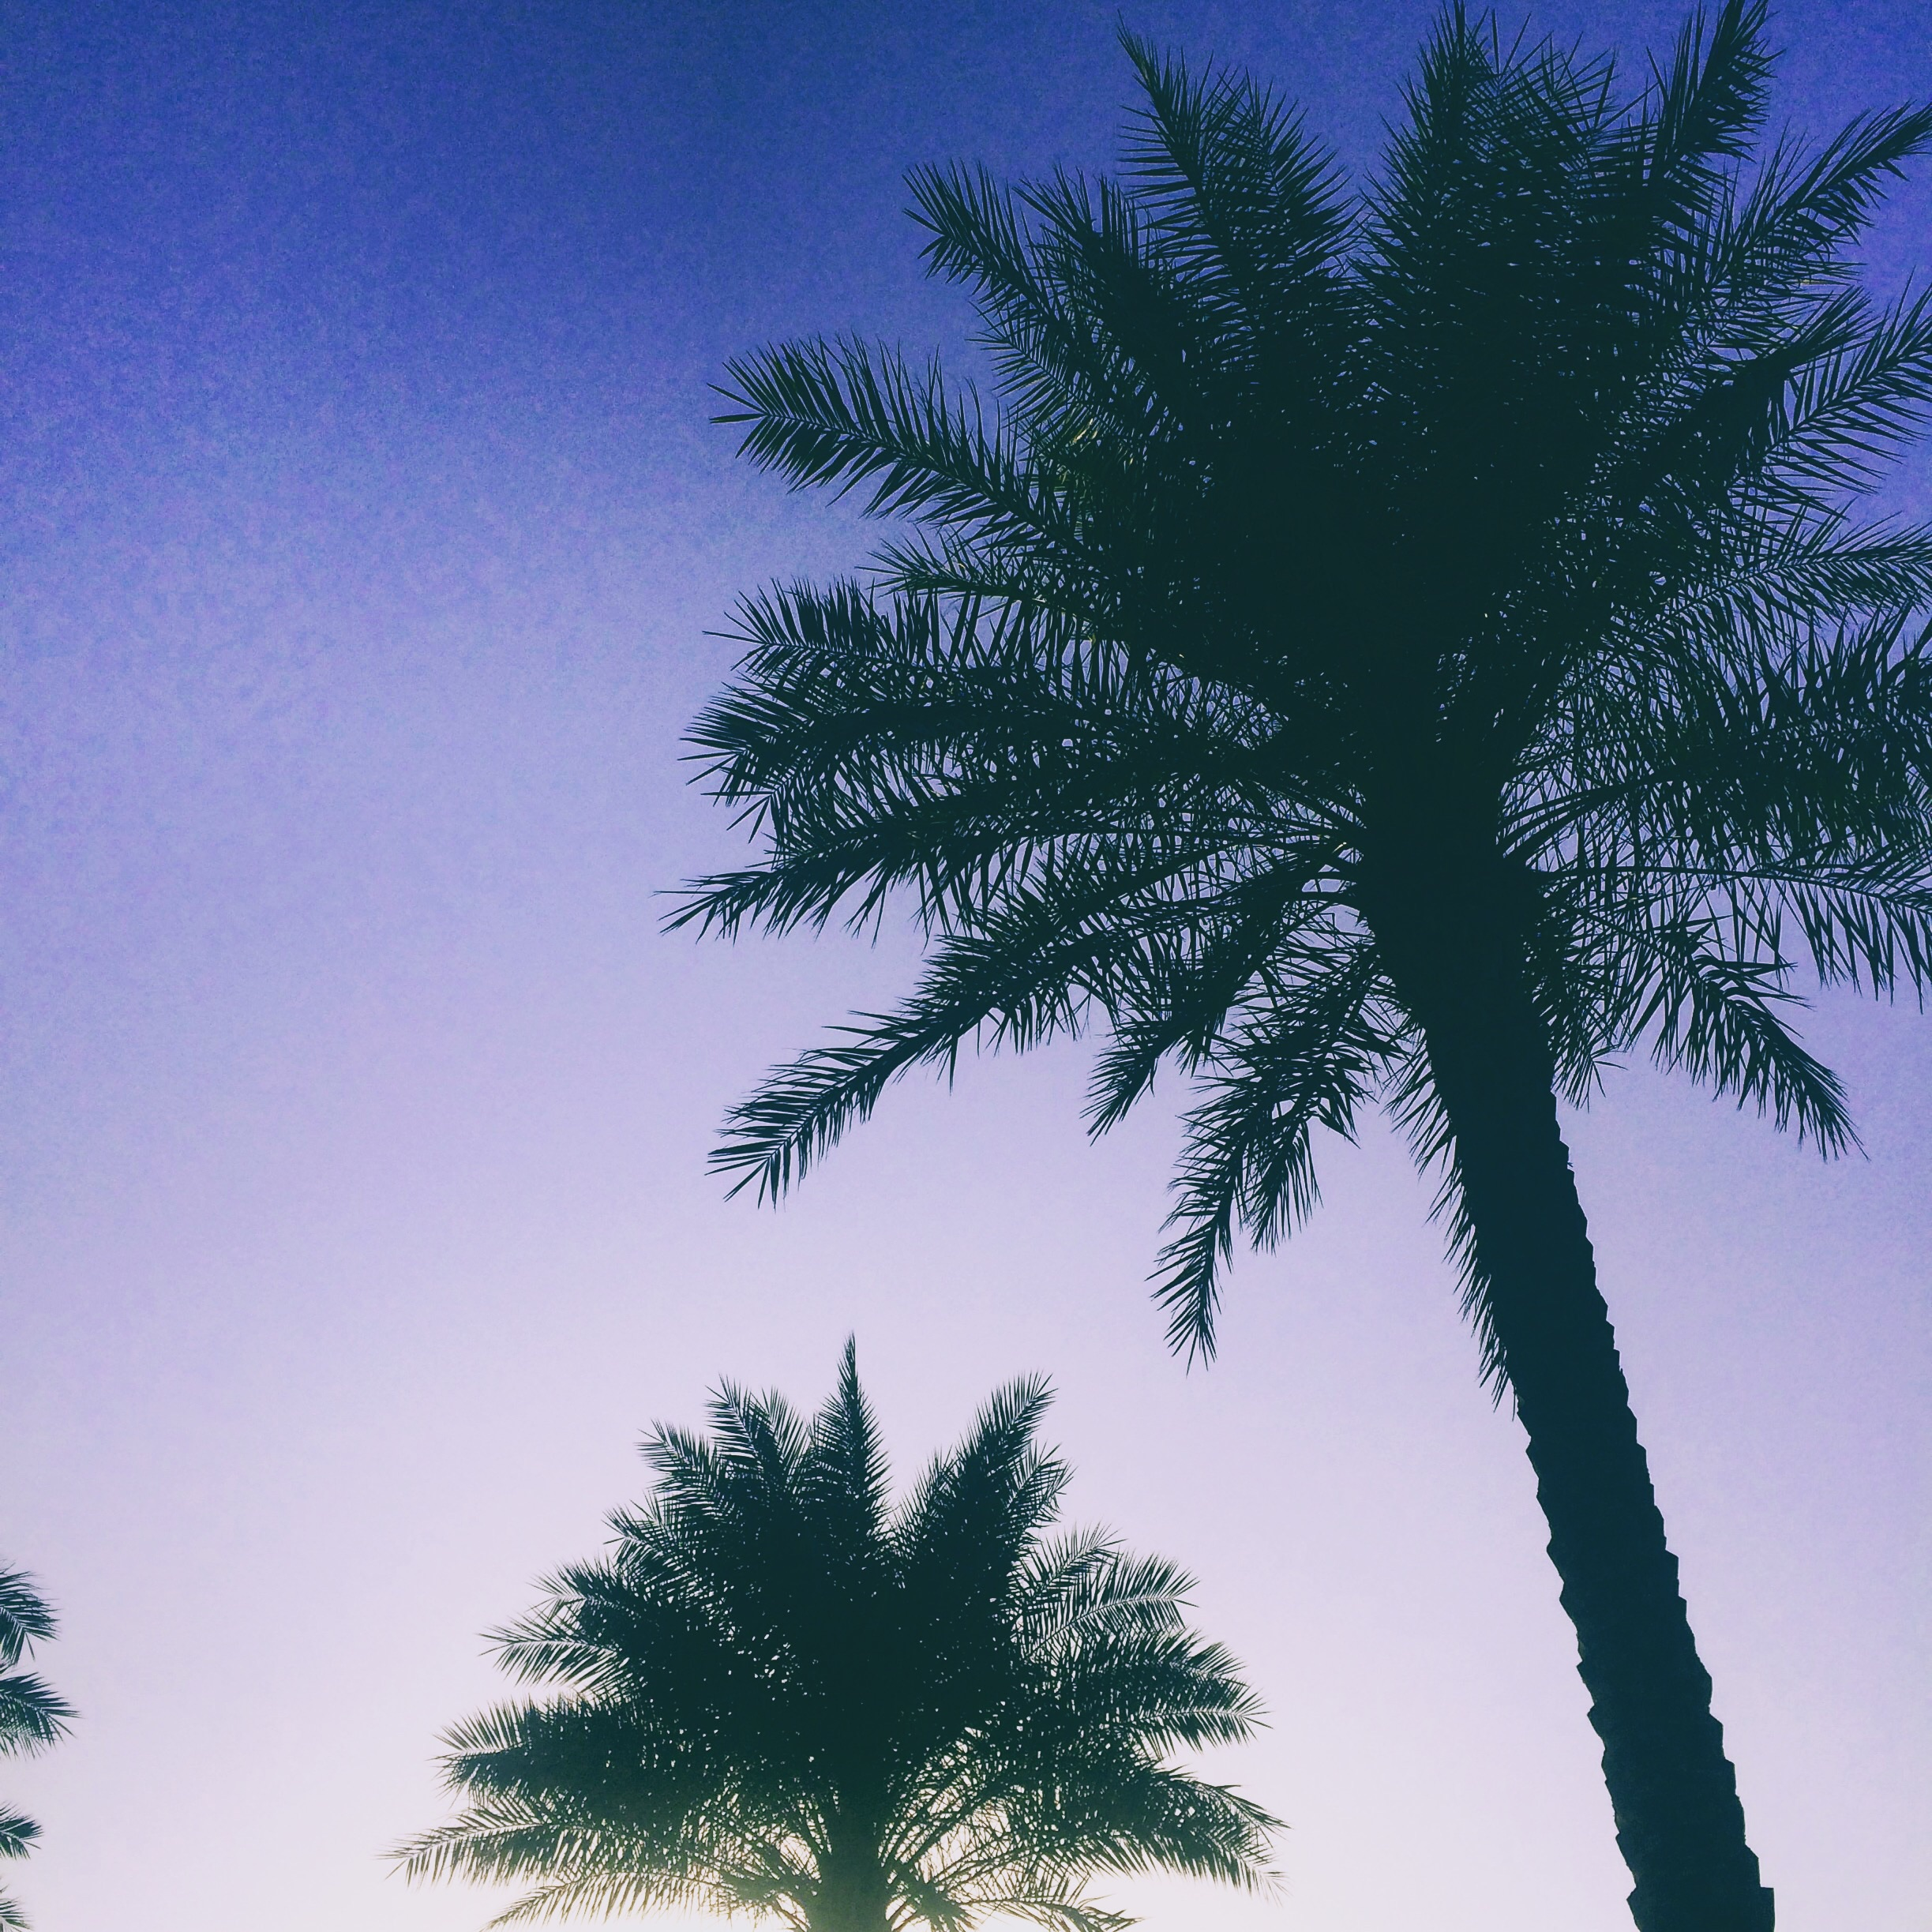 Palm Trees in Dubai